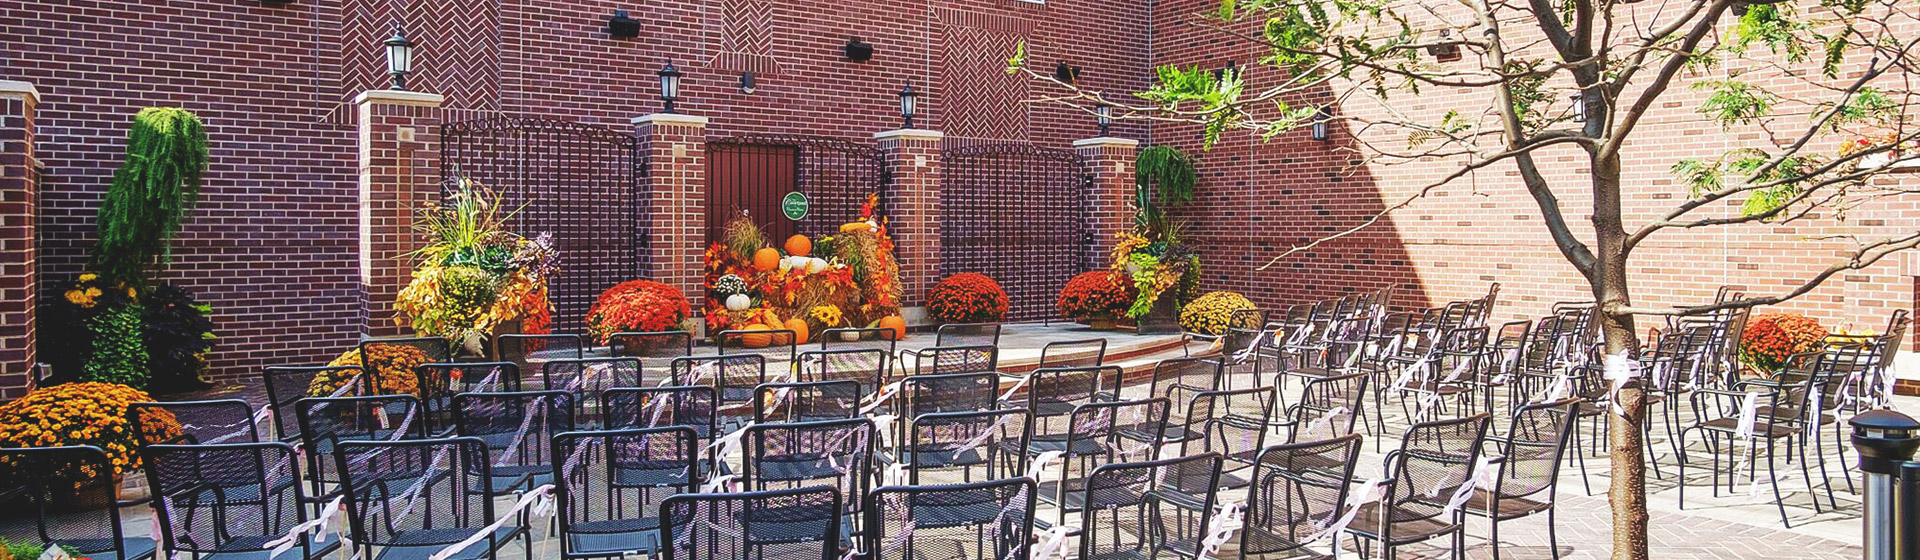 The Courtyard​​ at Charley Creek Inn - Wabash, Indiana